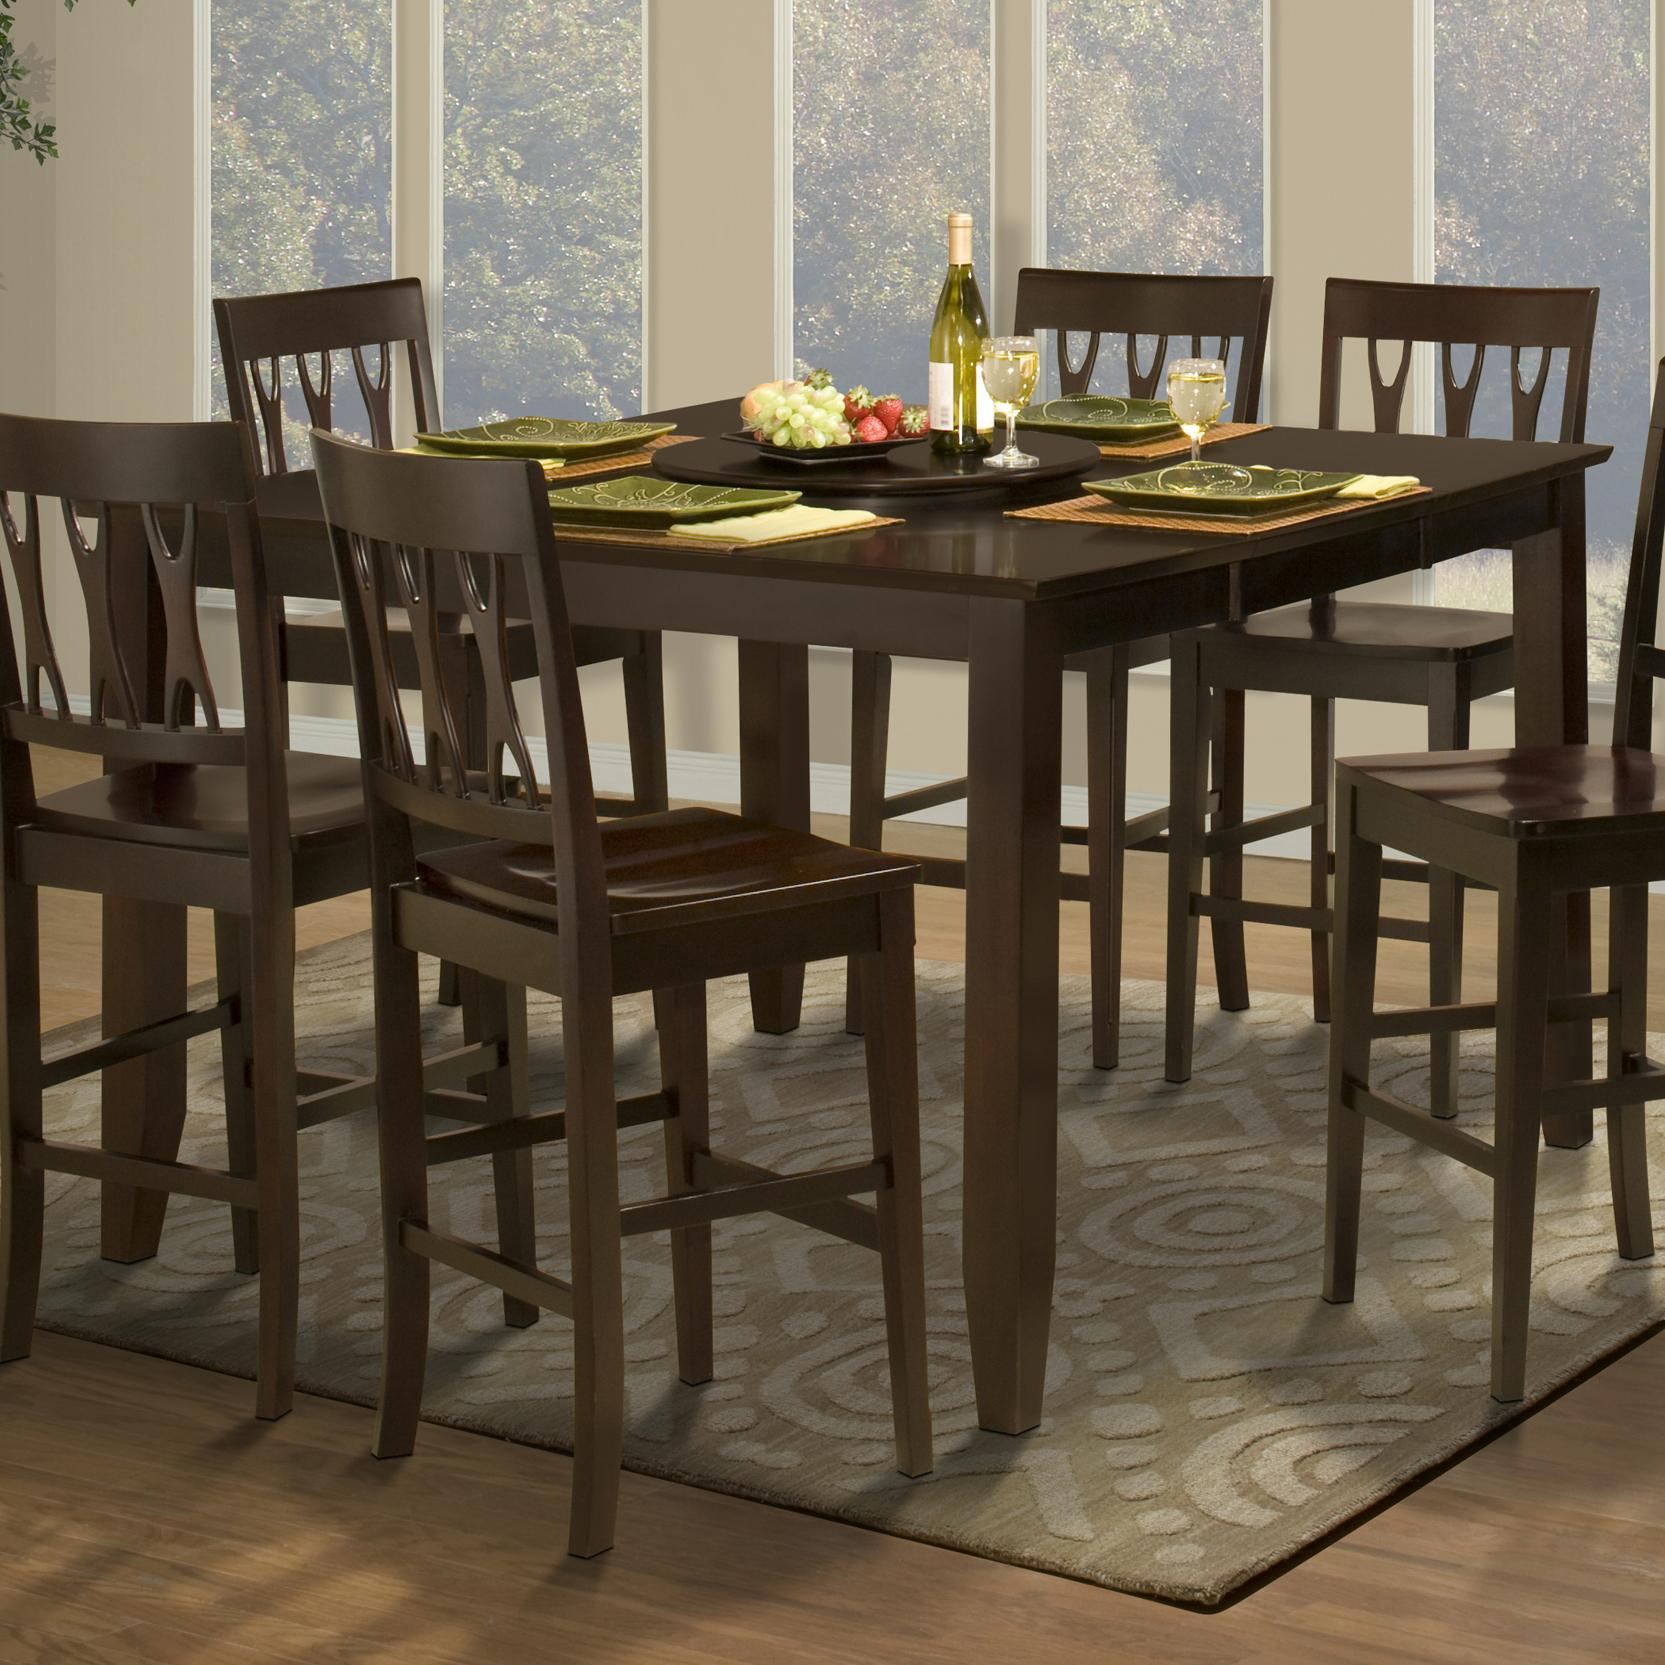 New classic style 19 counter height dining table with for New style dining table